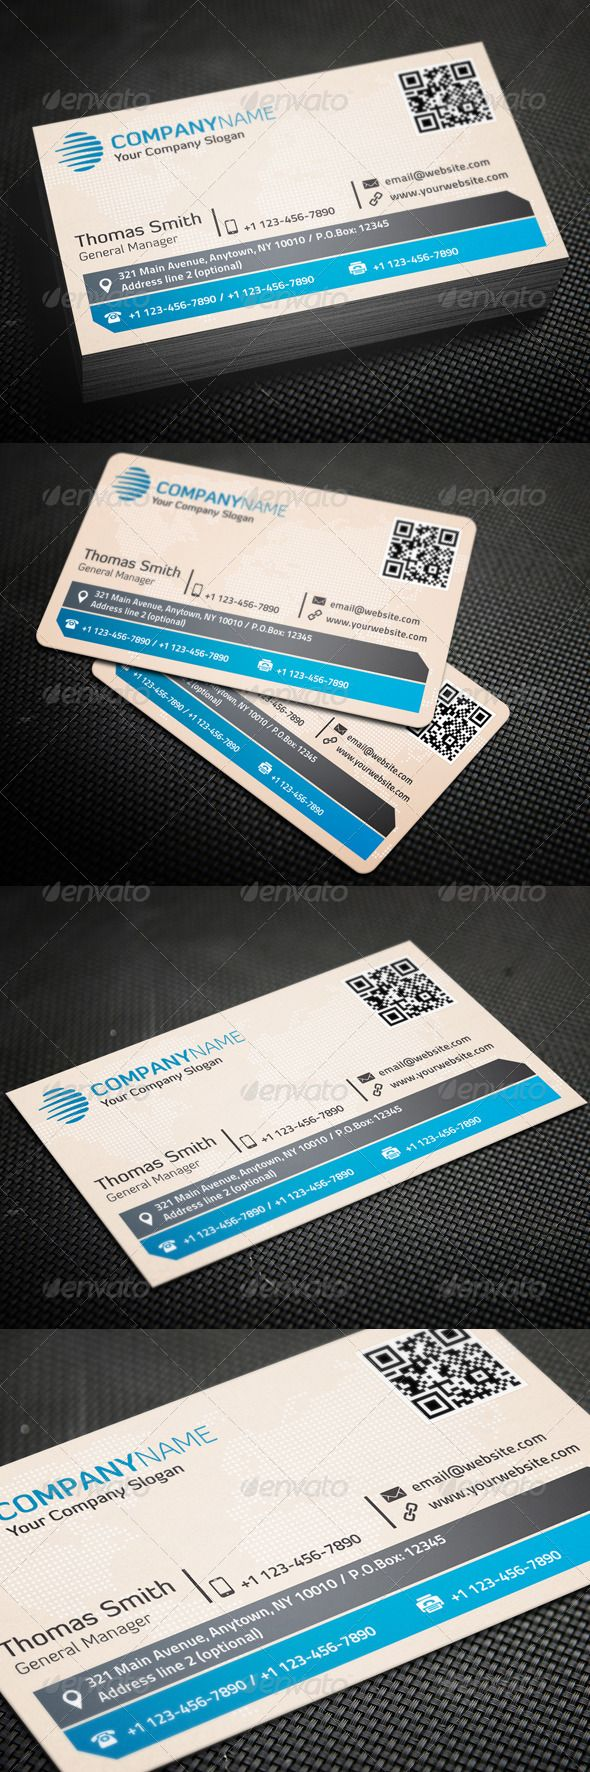 19 best business card ideas images on pinterest business cards corporate business card reheart Choice Image